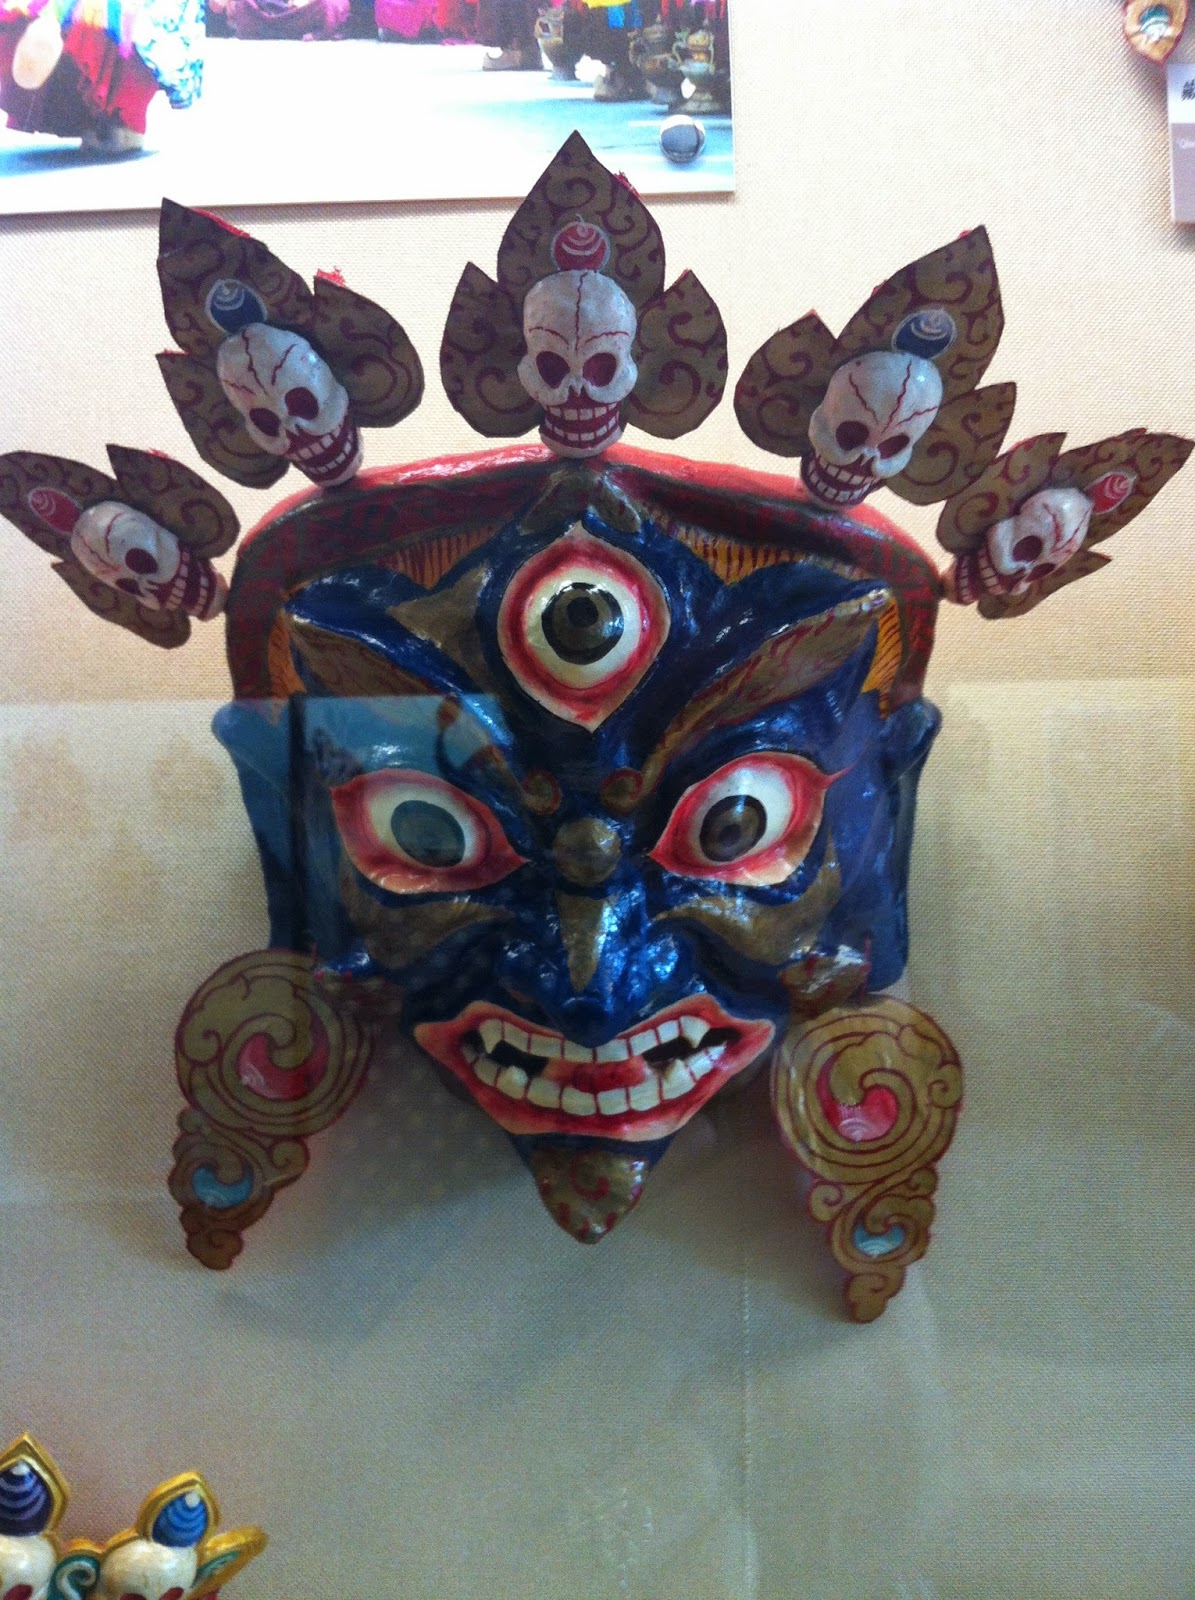 A Tibetan Buddhist Mask from the Yunnan Nationalities Museum